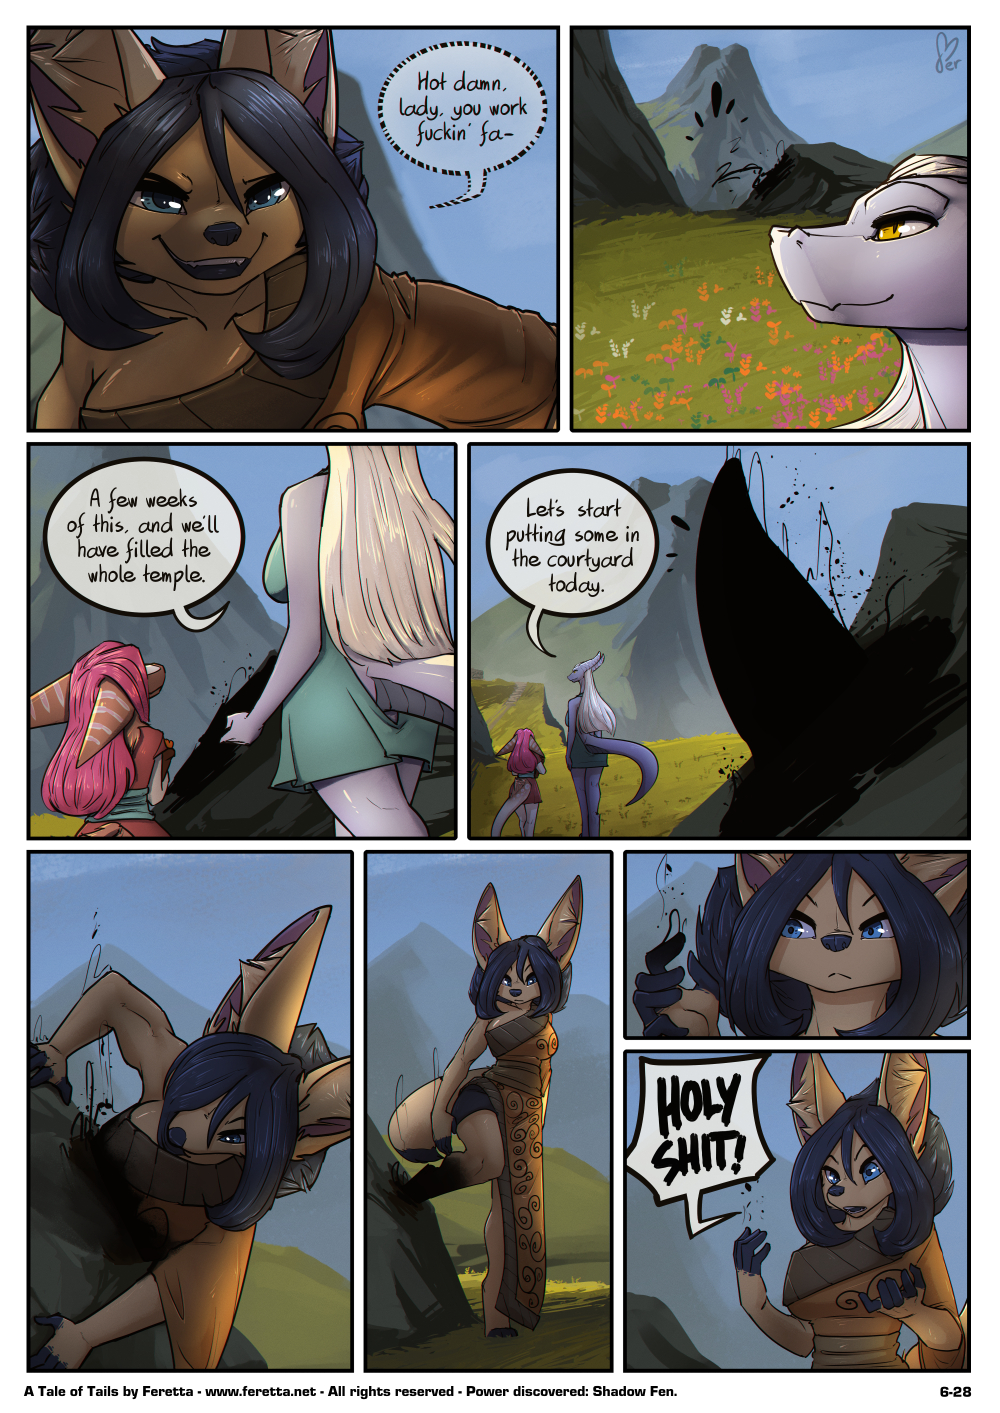 A Tale of Tails, 6-28